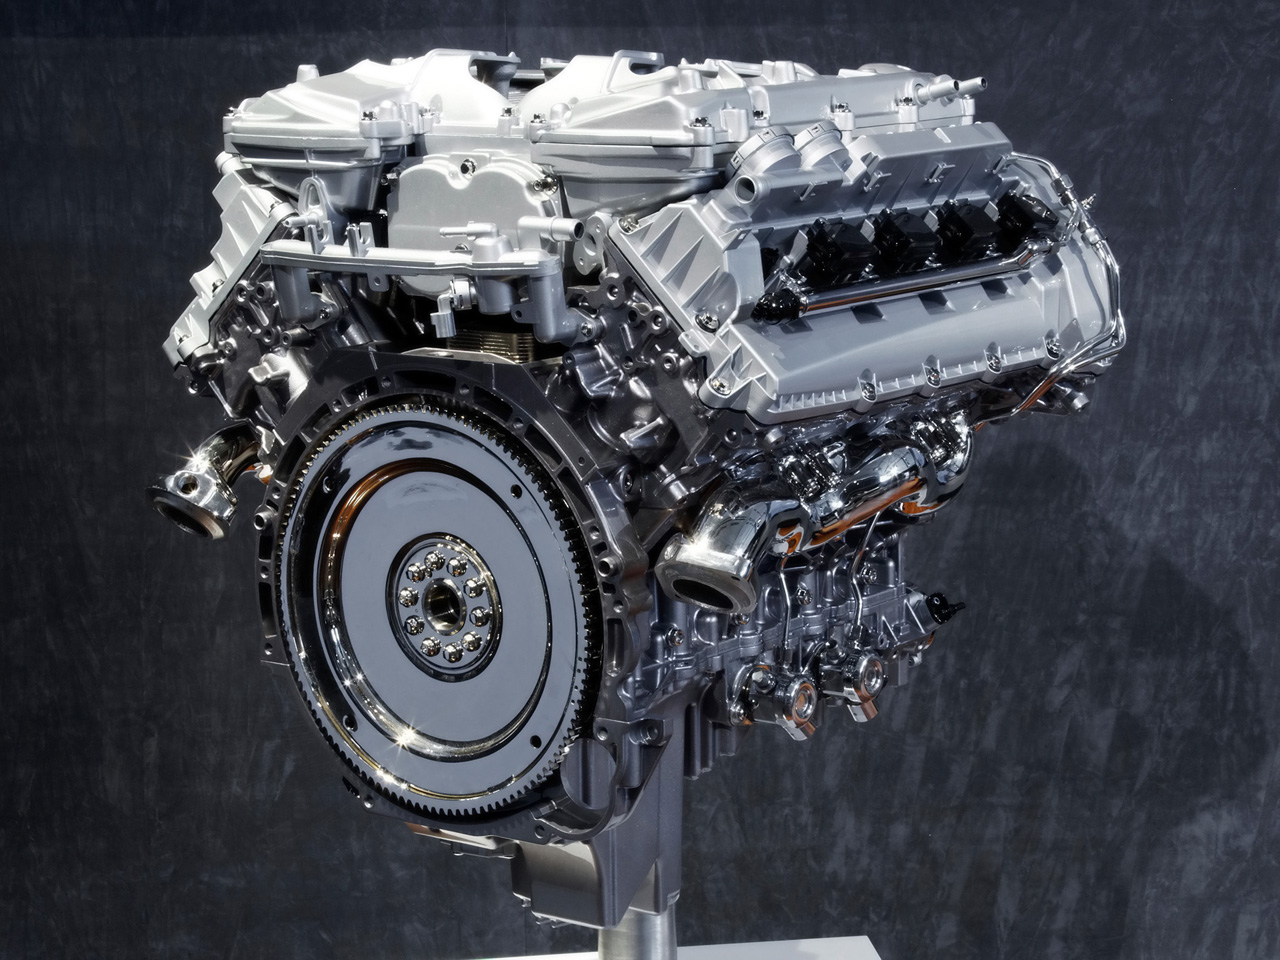 Land Rover Range Rover engine #1